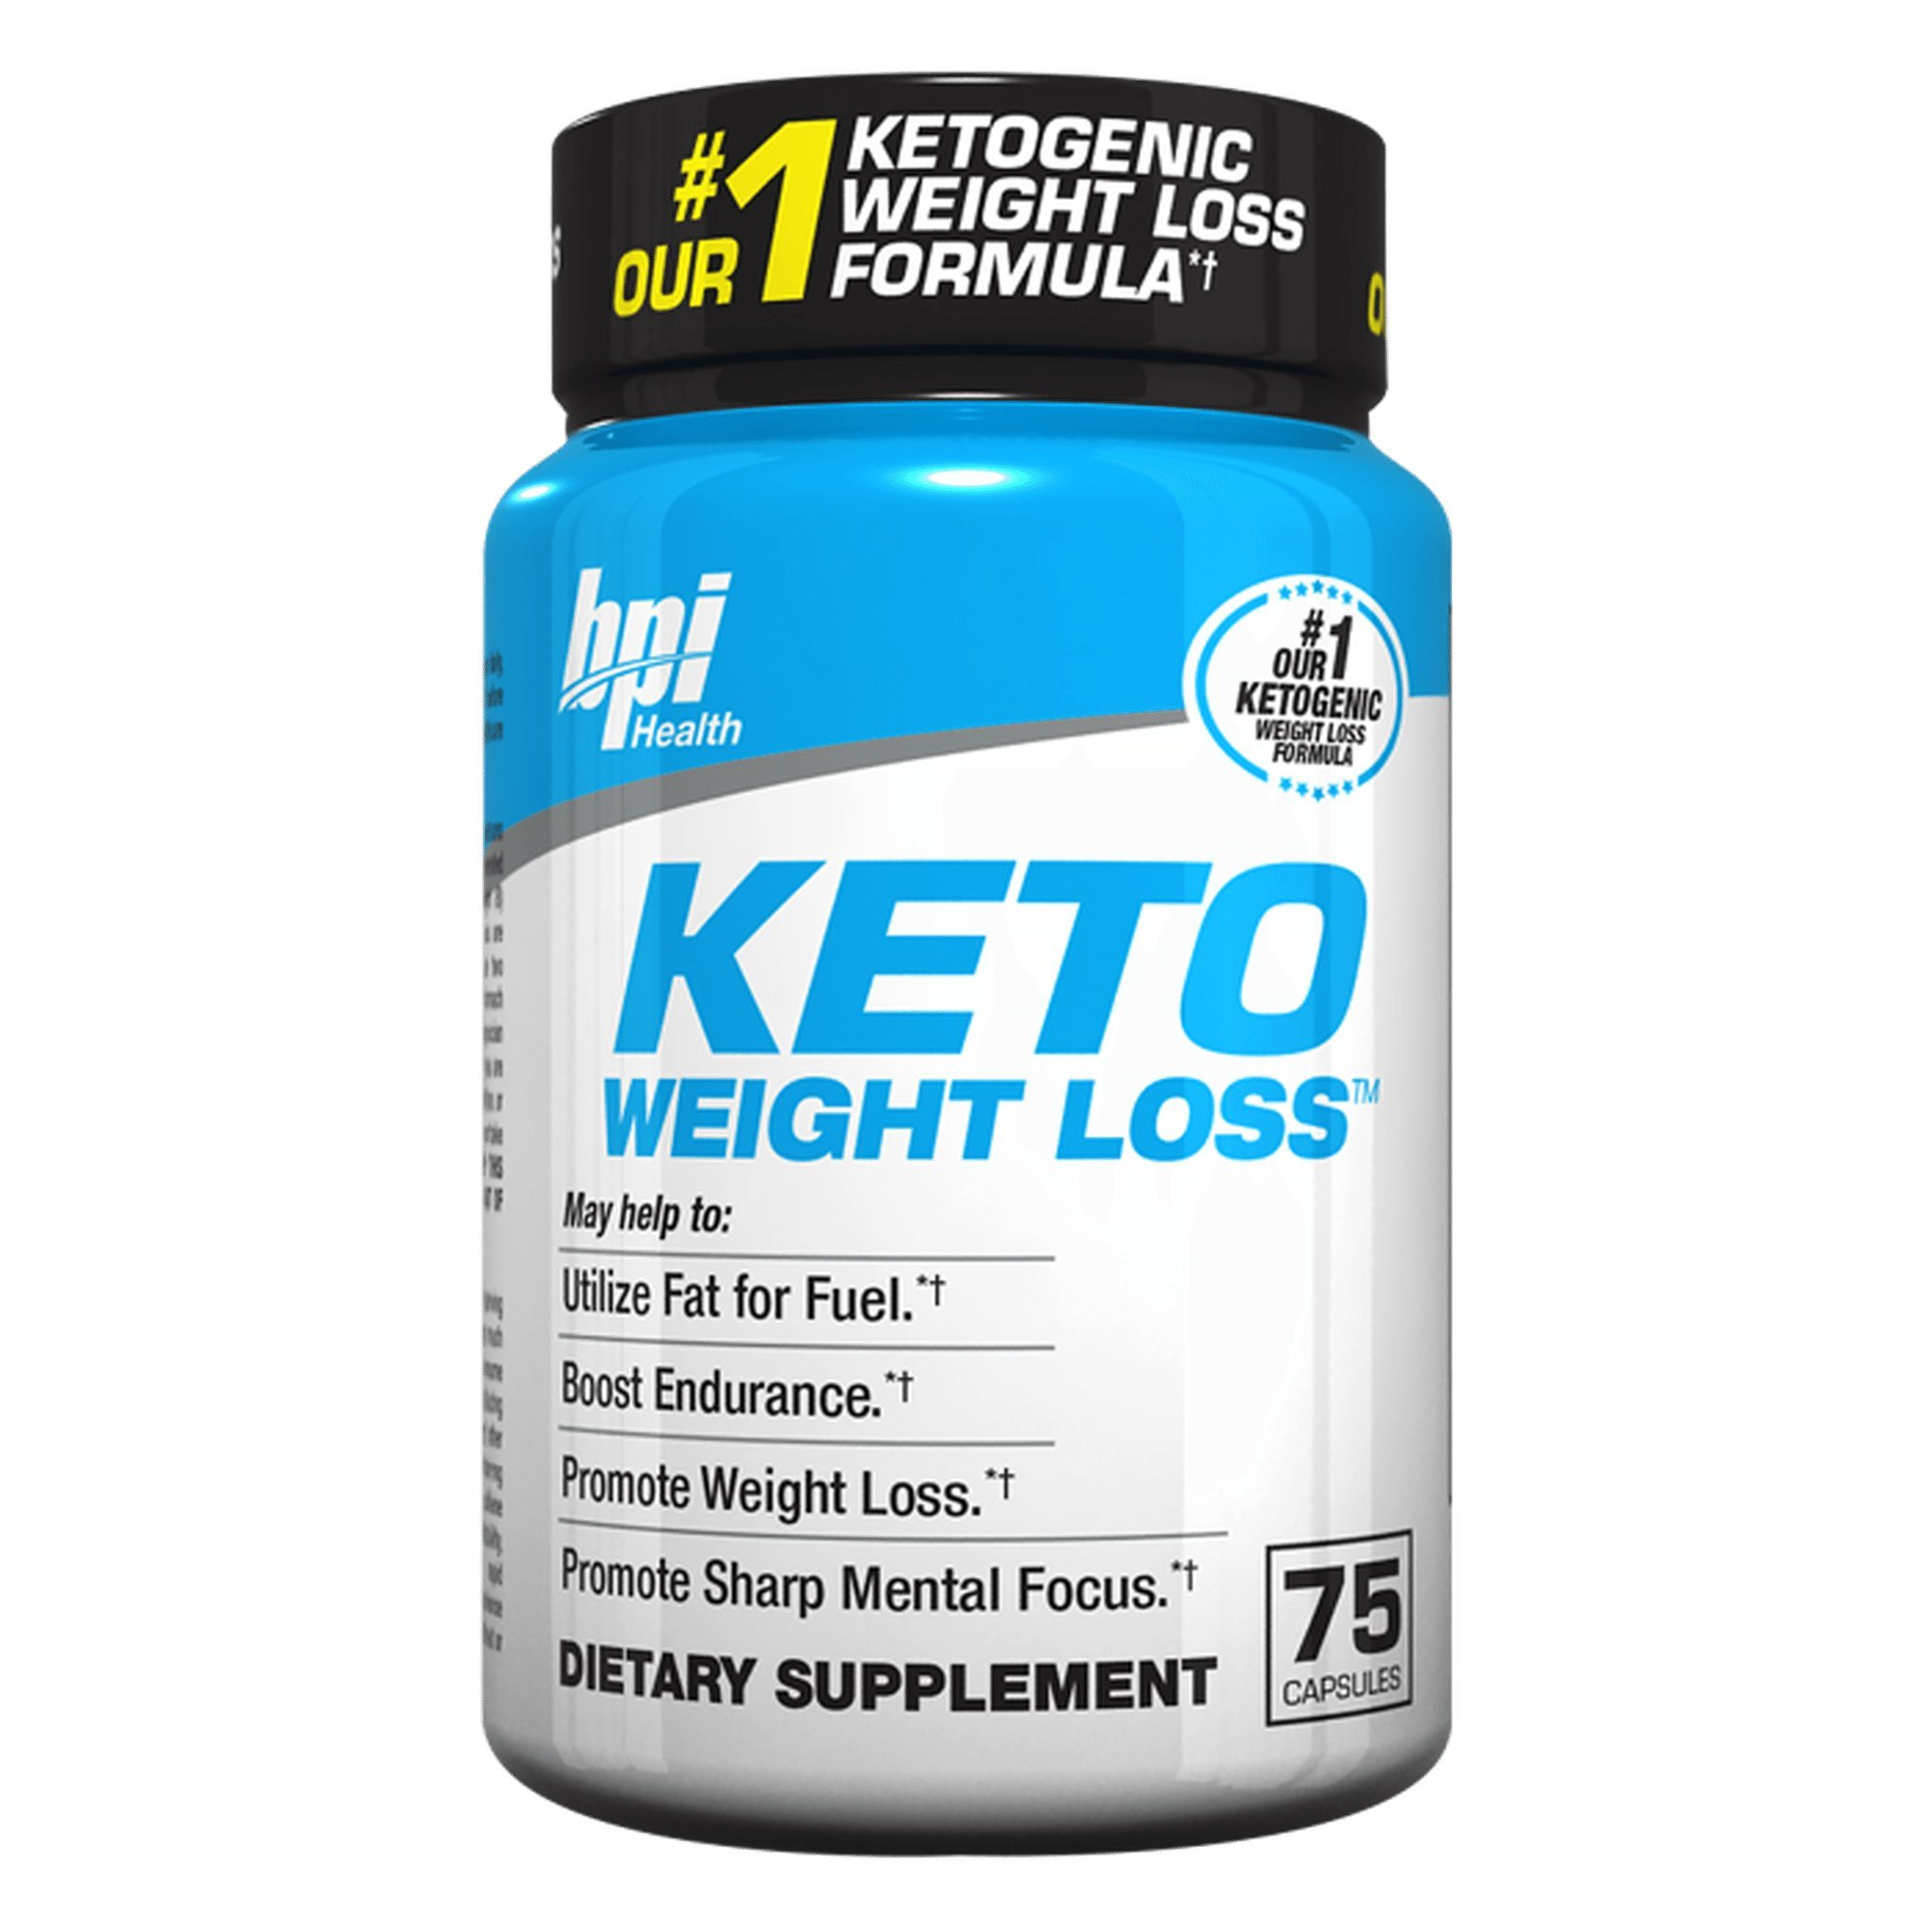 Keto Weight Loss Is A Ketogenic Fat Burner - Formulated for the Keto Diet To Burn Fat, Maintain Ketosis, Enhance Mental Focus & Clarity - BHB's, MCT and More - 75 Easy to Swallow Capsules by BPI Sports